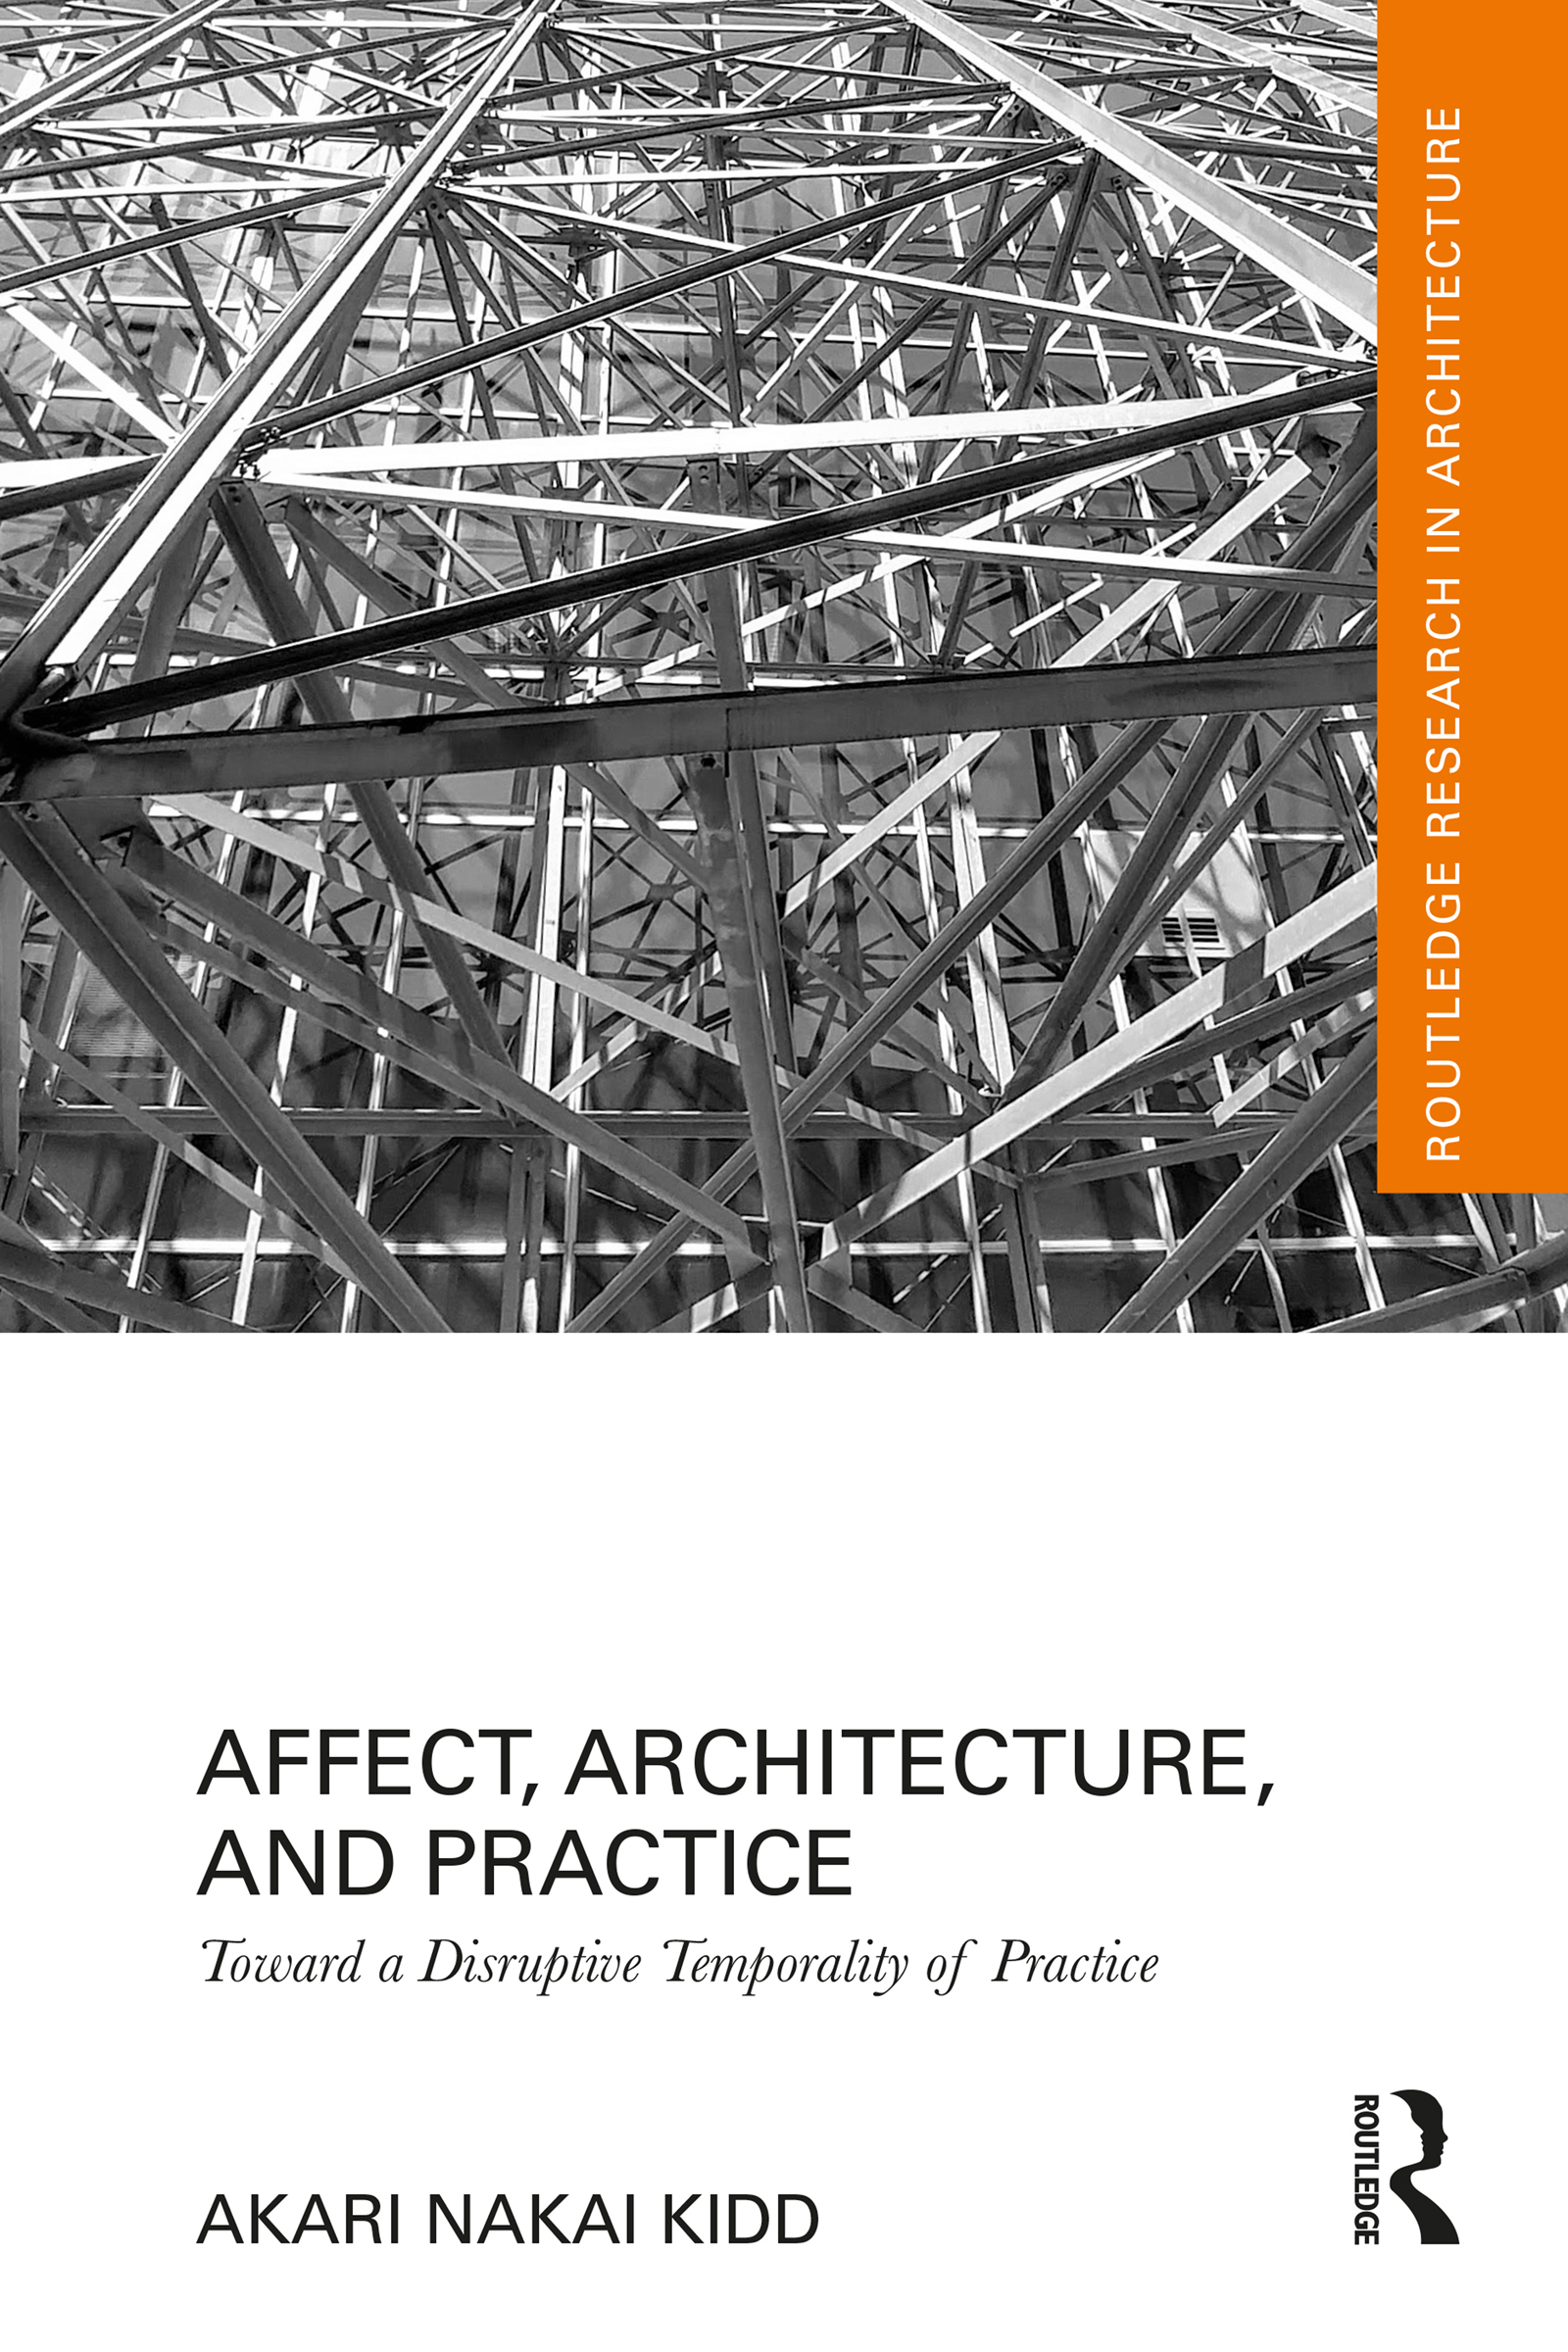 Affect, Architecture, and Practice